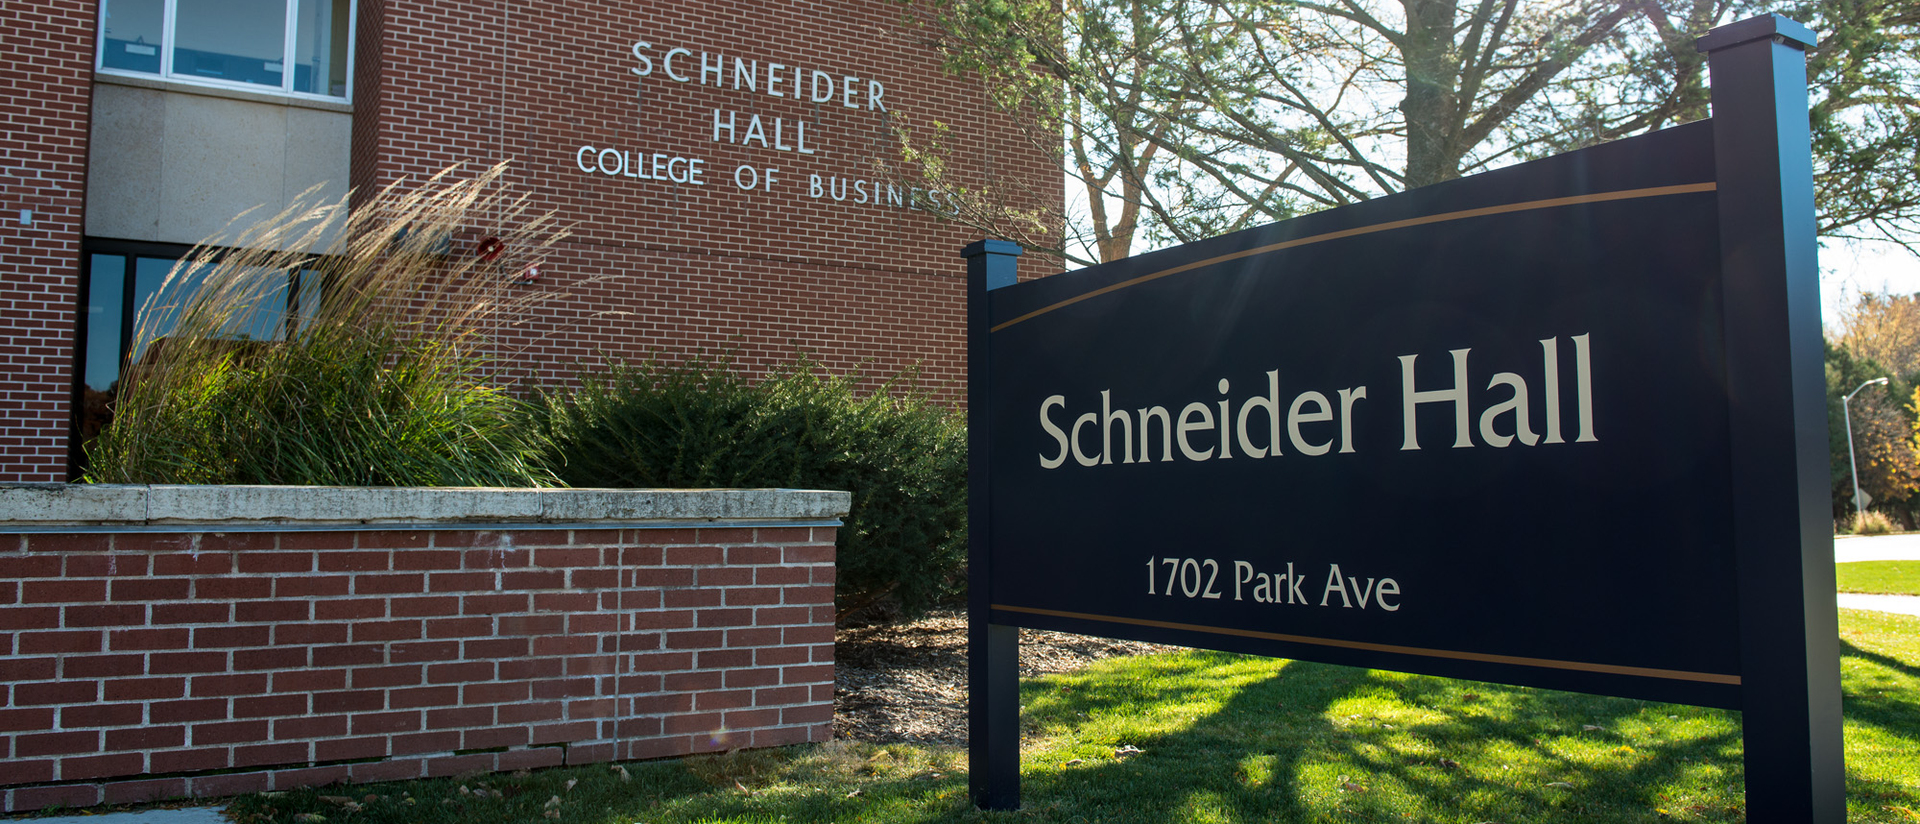 Schneider hall the College of Business home